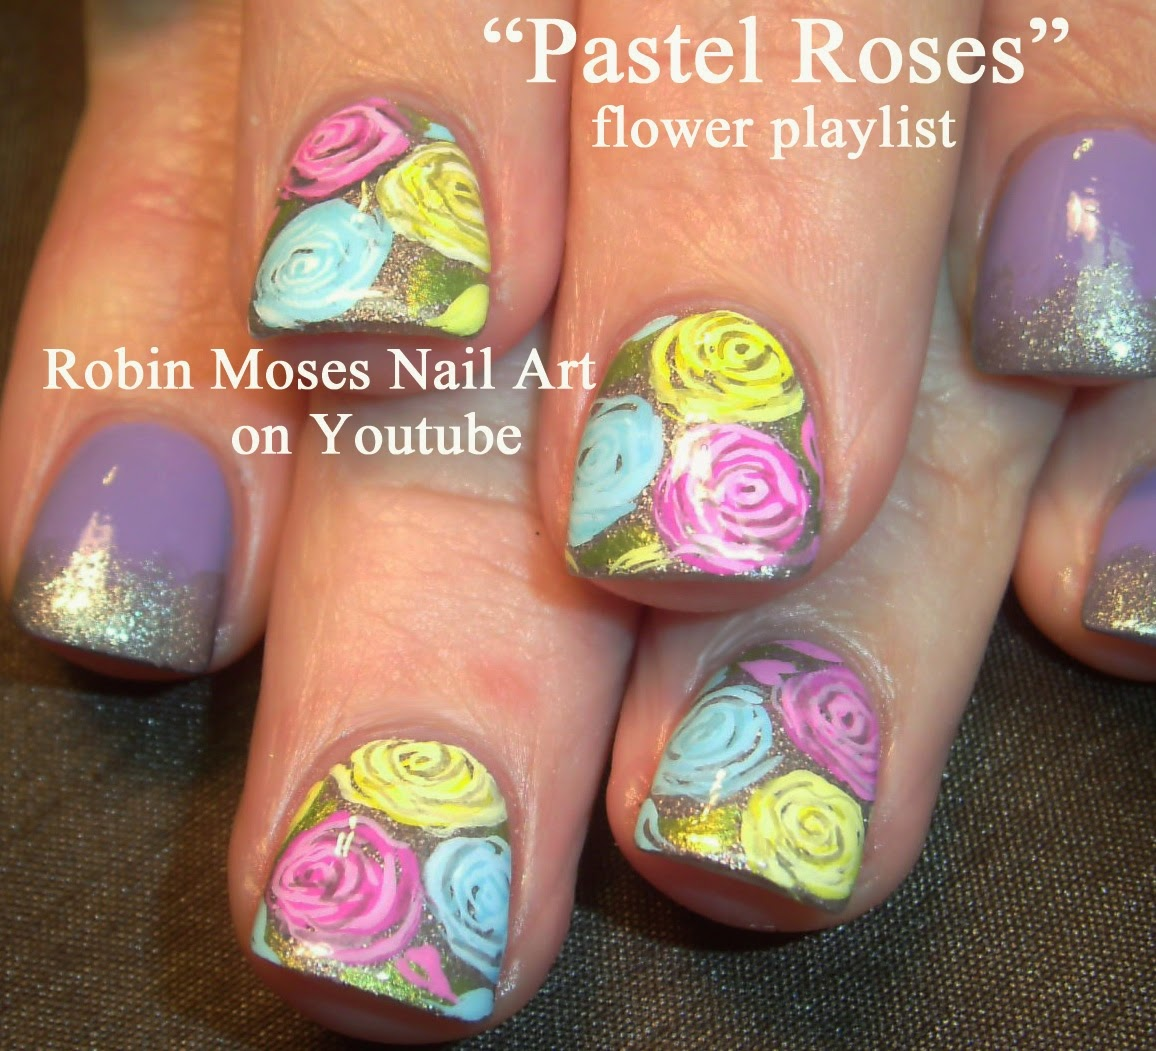 Robin moses nail art prom nails nail art prom nail art prom nails nail art prom nail art pastel roses pastel rose nail art how to paint roses rose nail art tutorial pink rose nails yellow rose prinsesfo Gallery